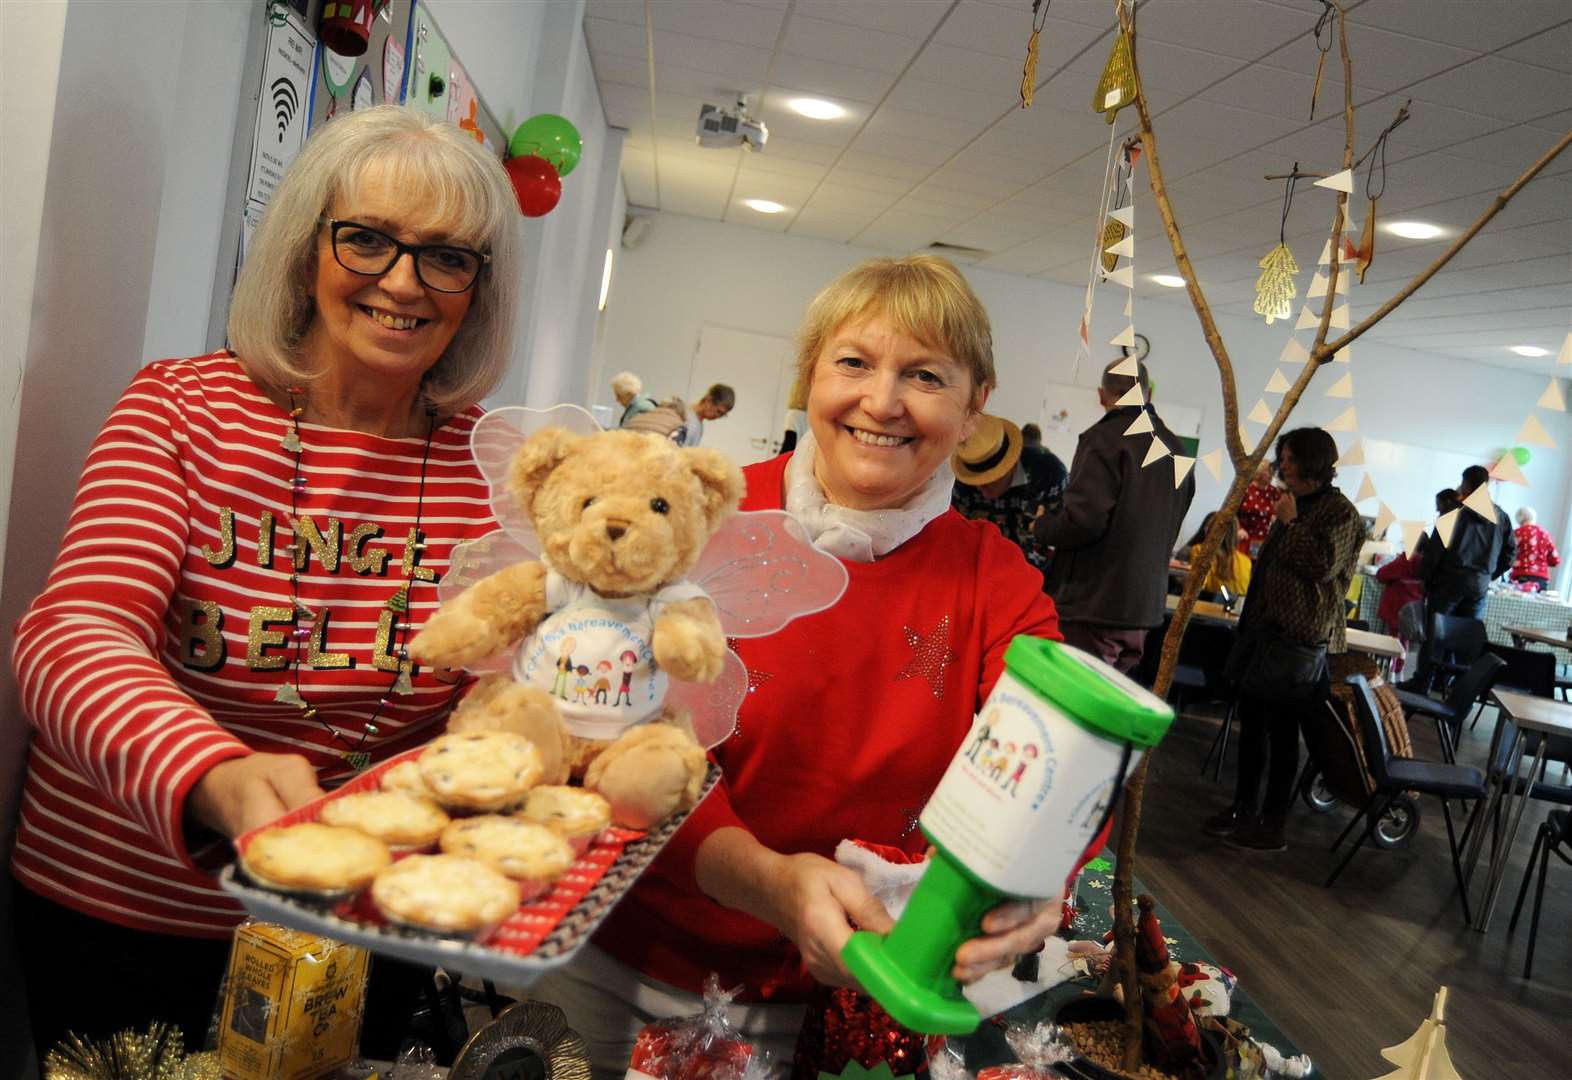 Festive cheer for children's cause